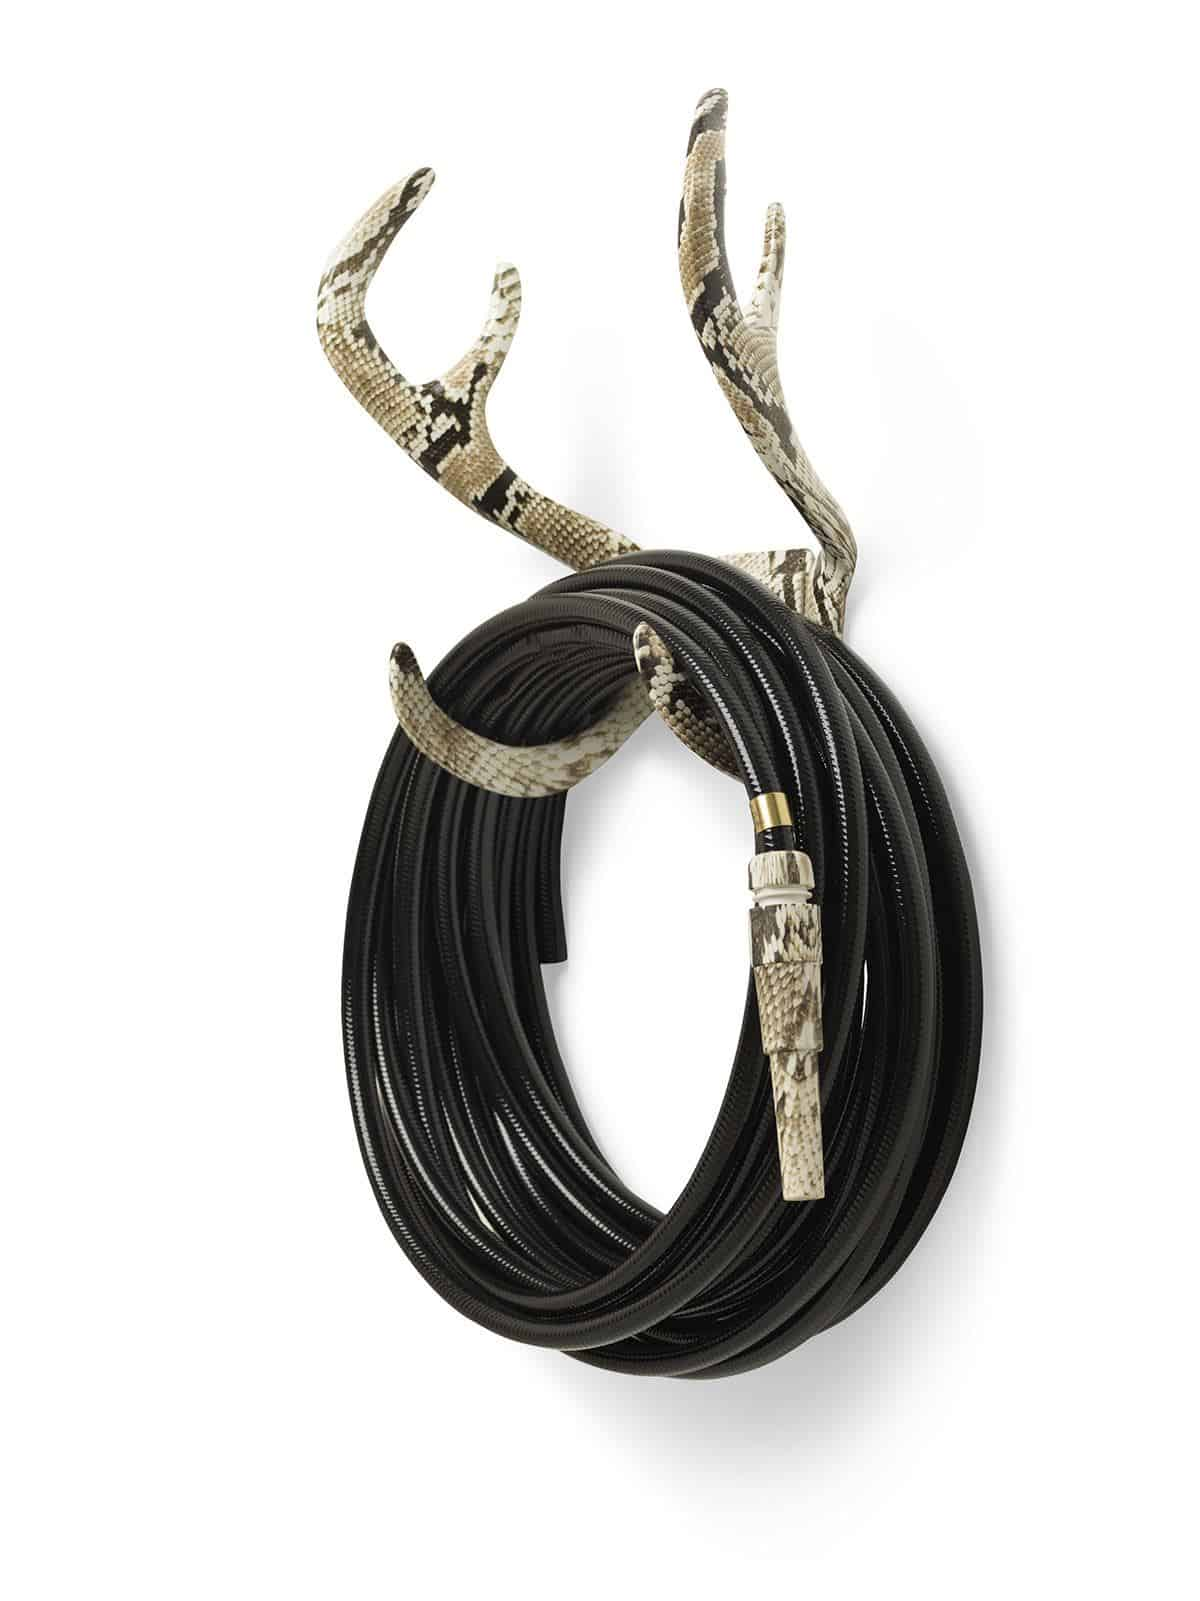 Garden Glory - Stylish garden equipment - black garden hose with snakeskin nozzle wall-mounted on snakeskin antlers